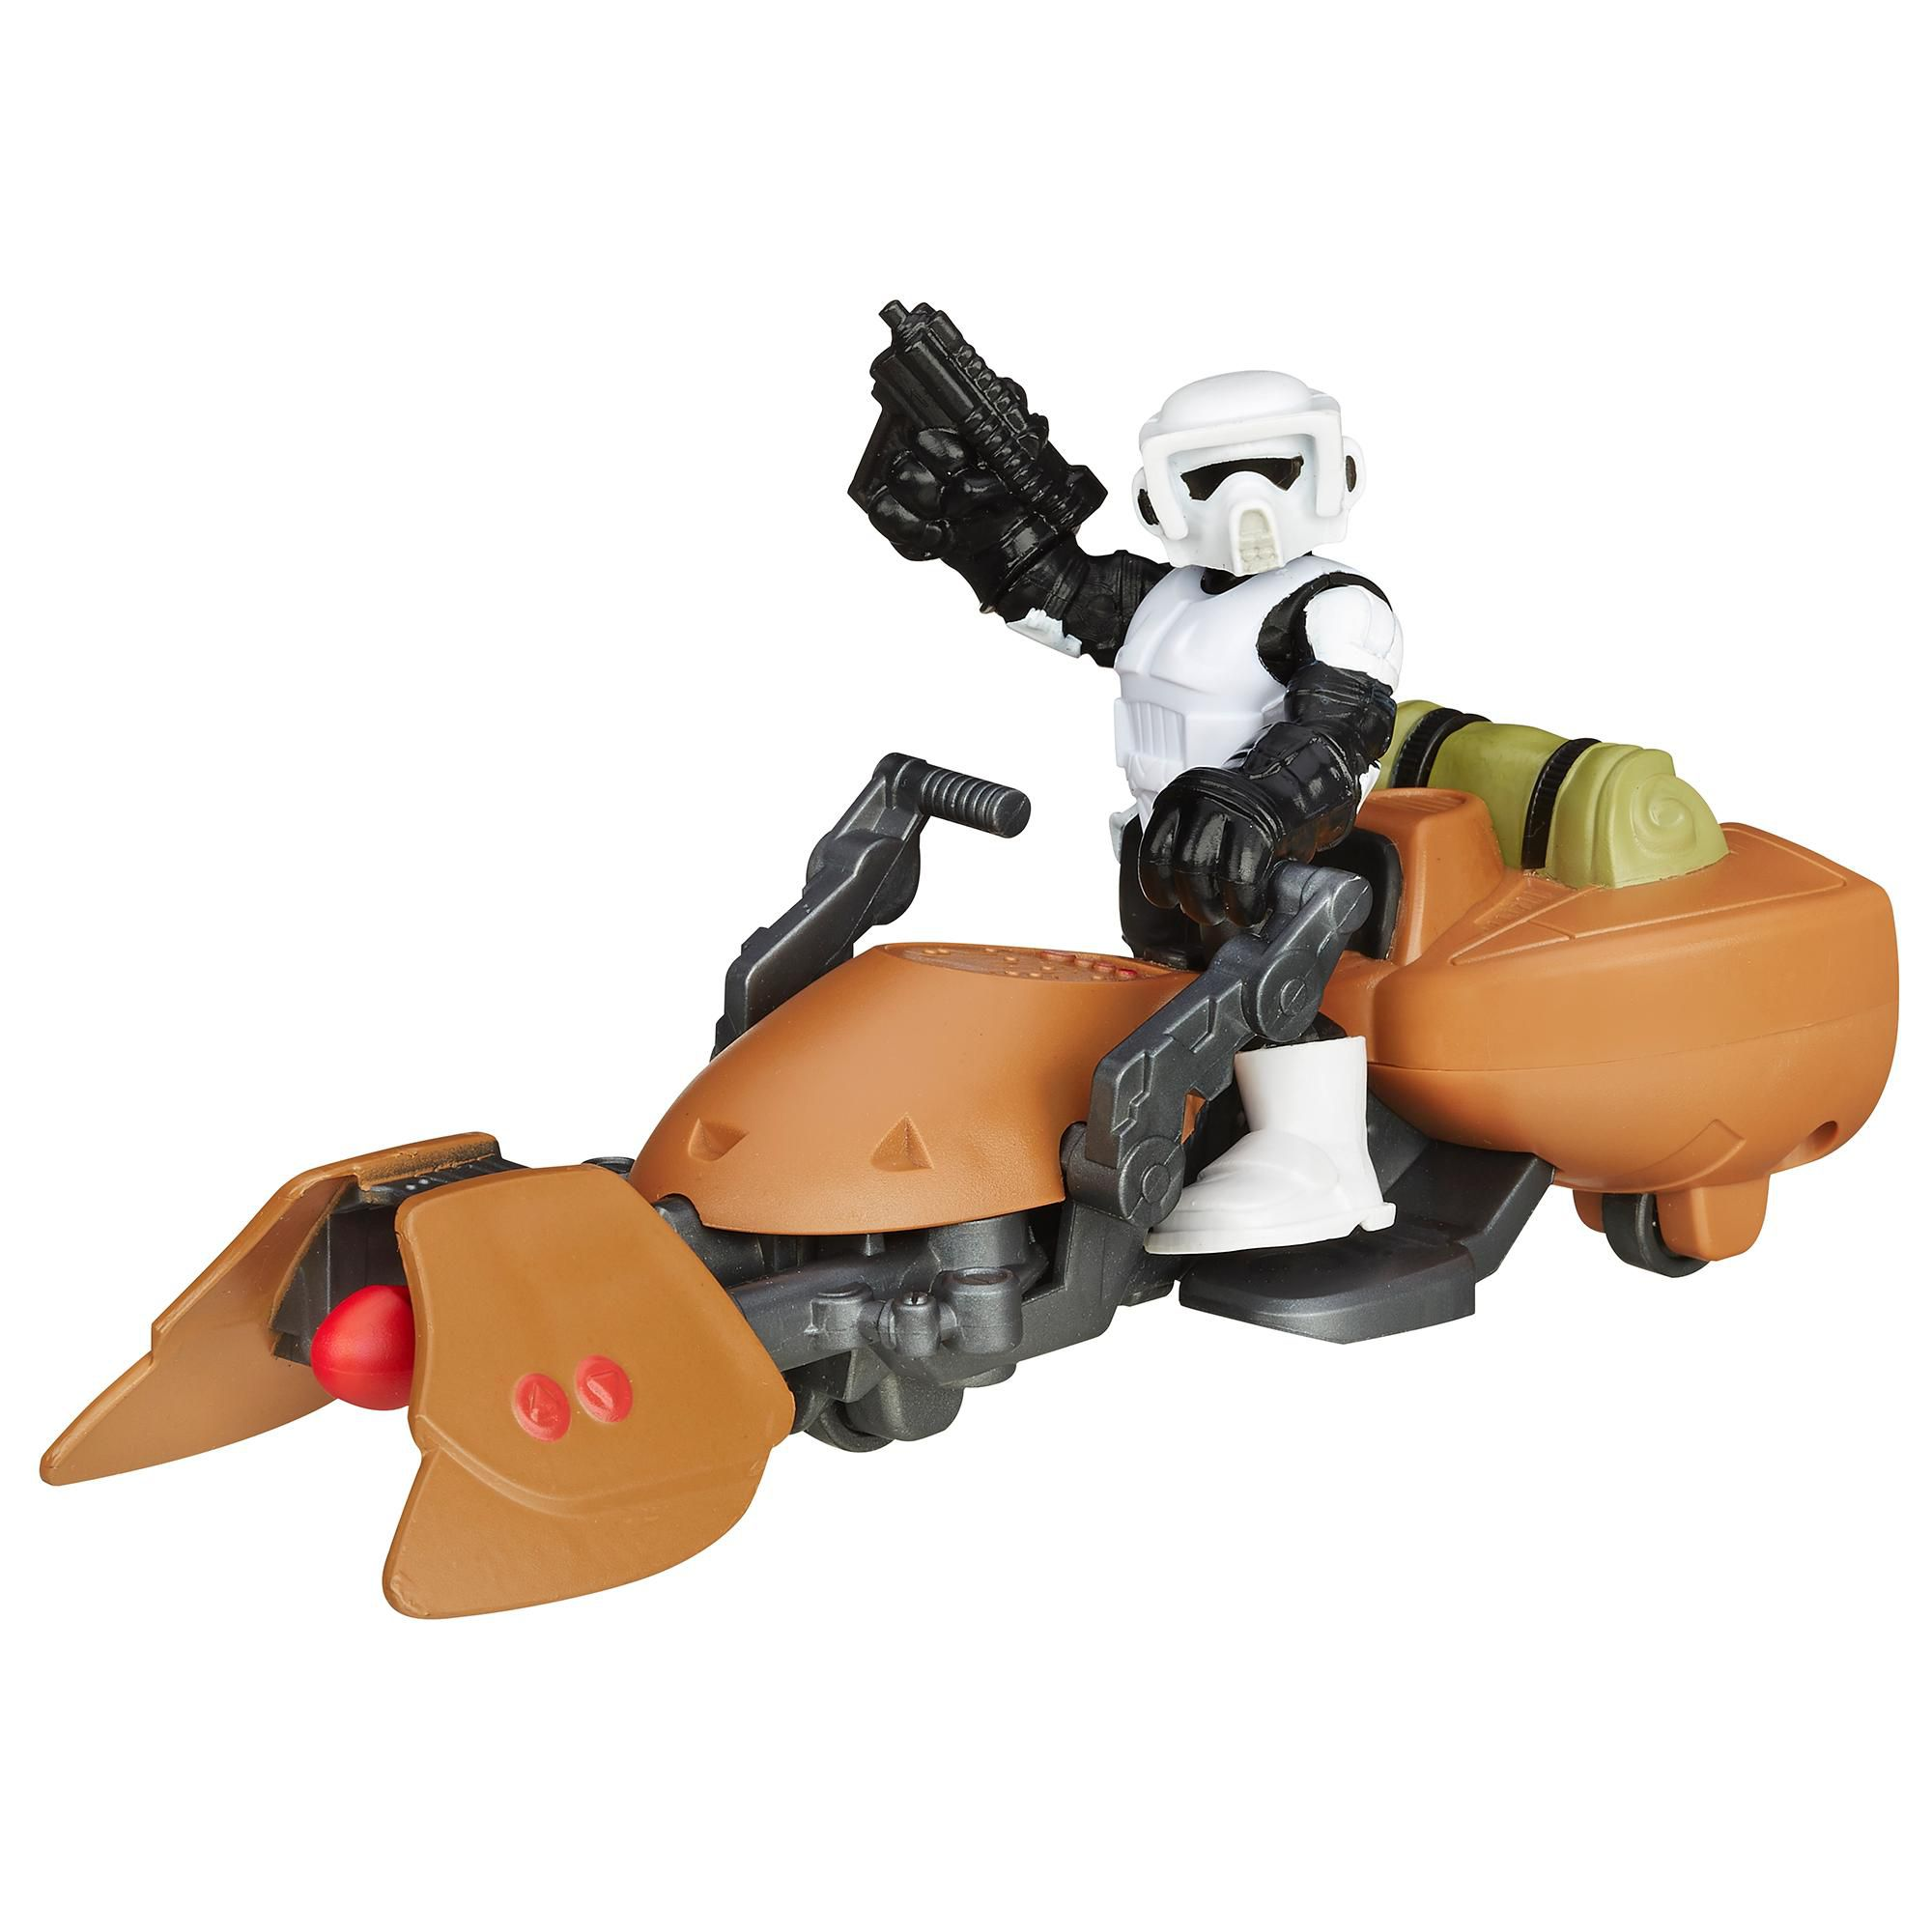 Boneco Star Wars Scout Trooper e Sppeder Bike B2035 - Hasbro